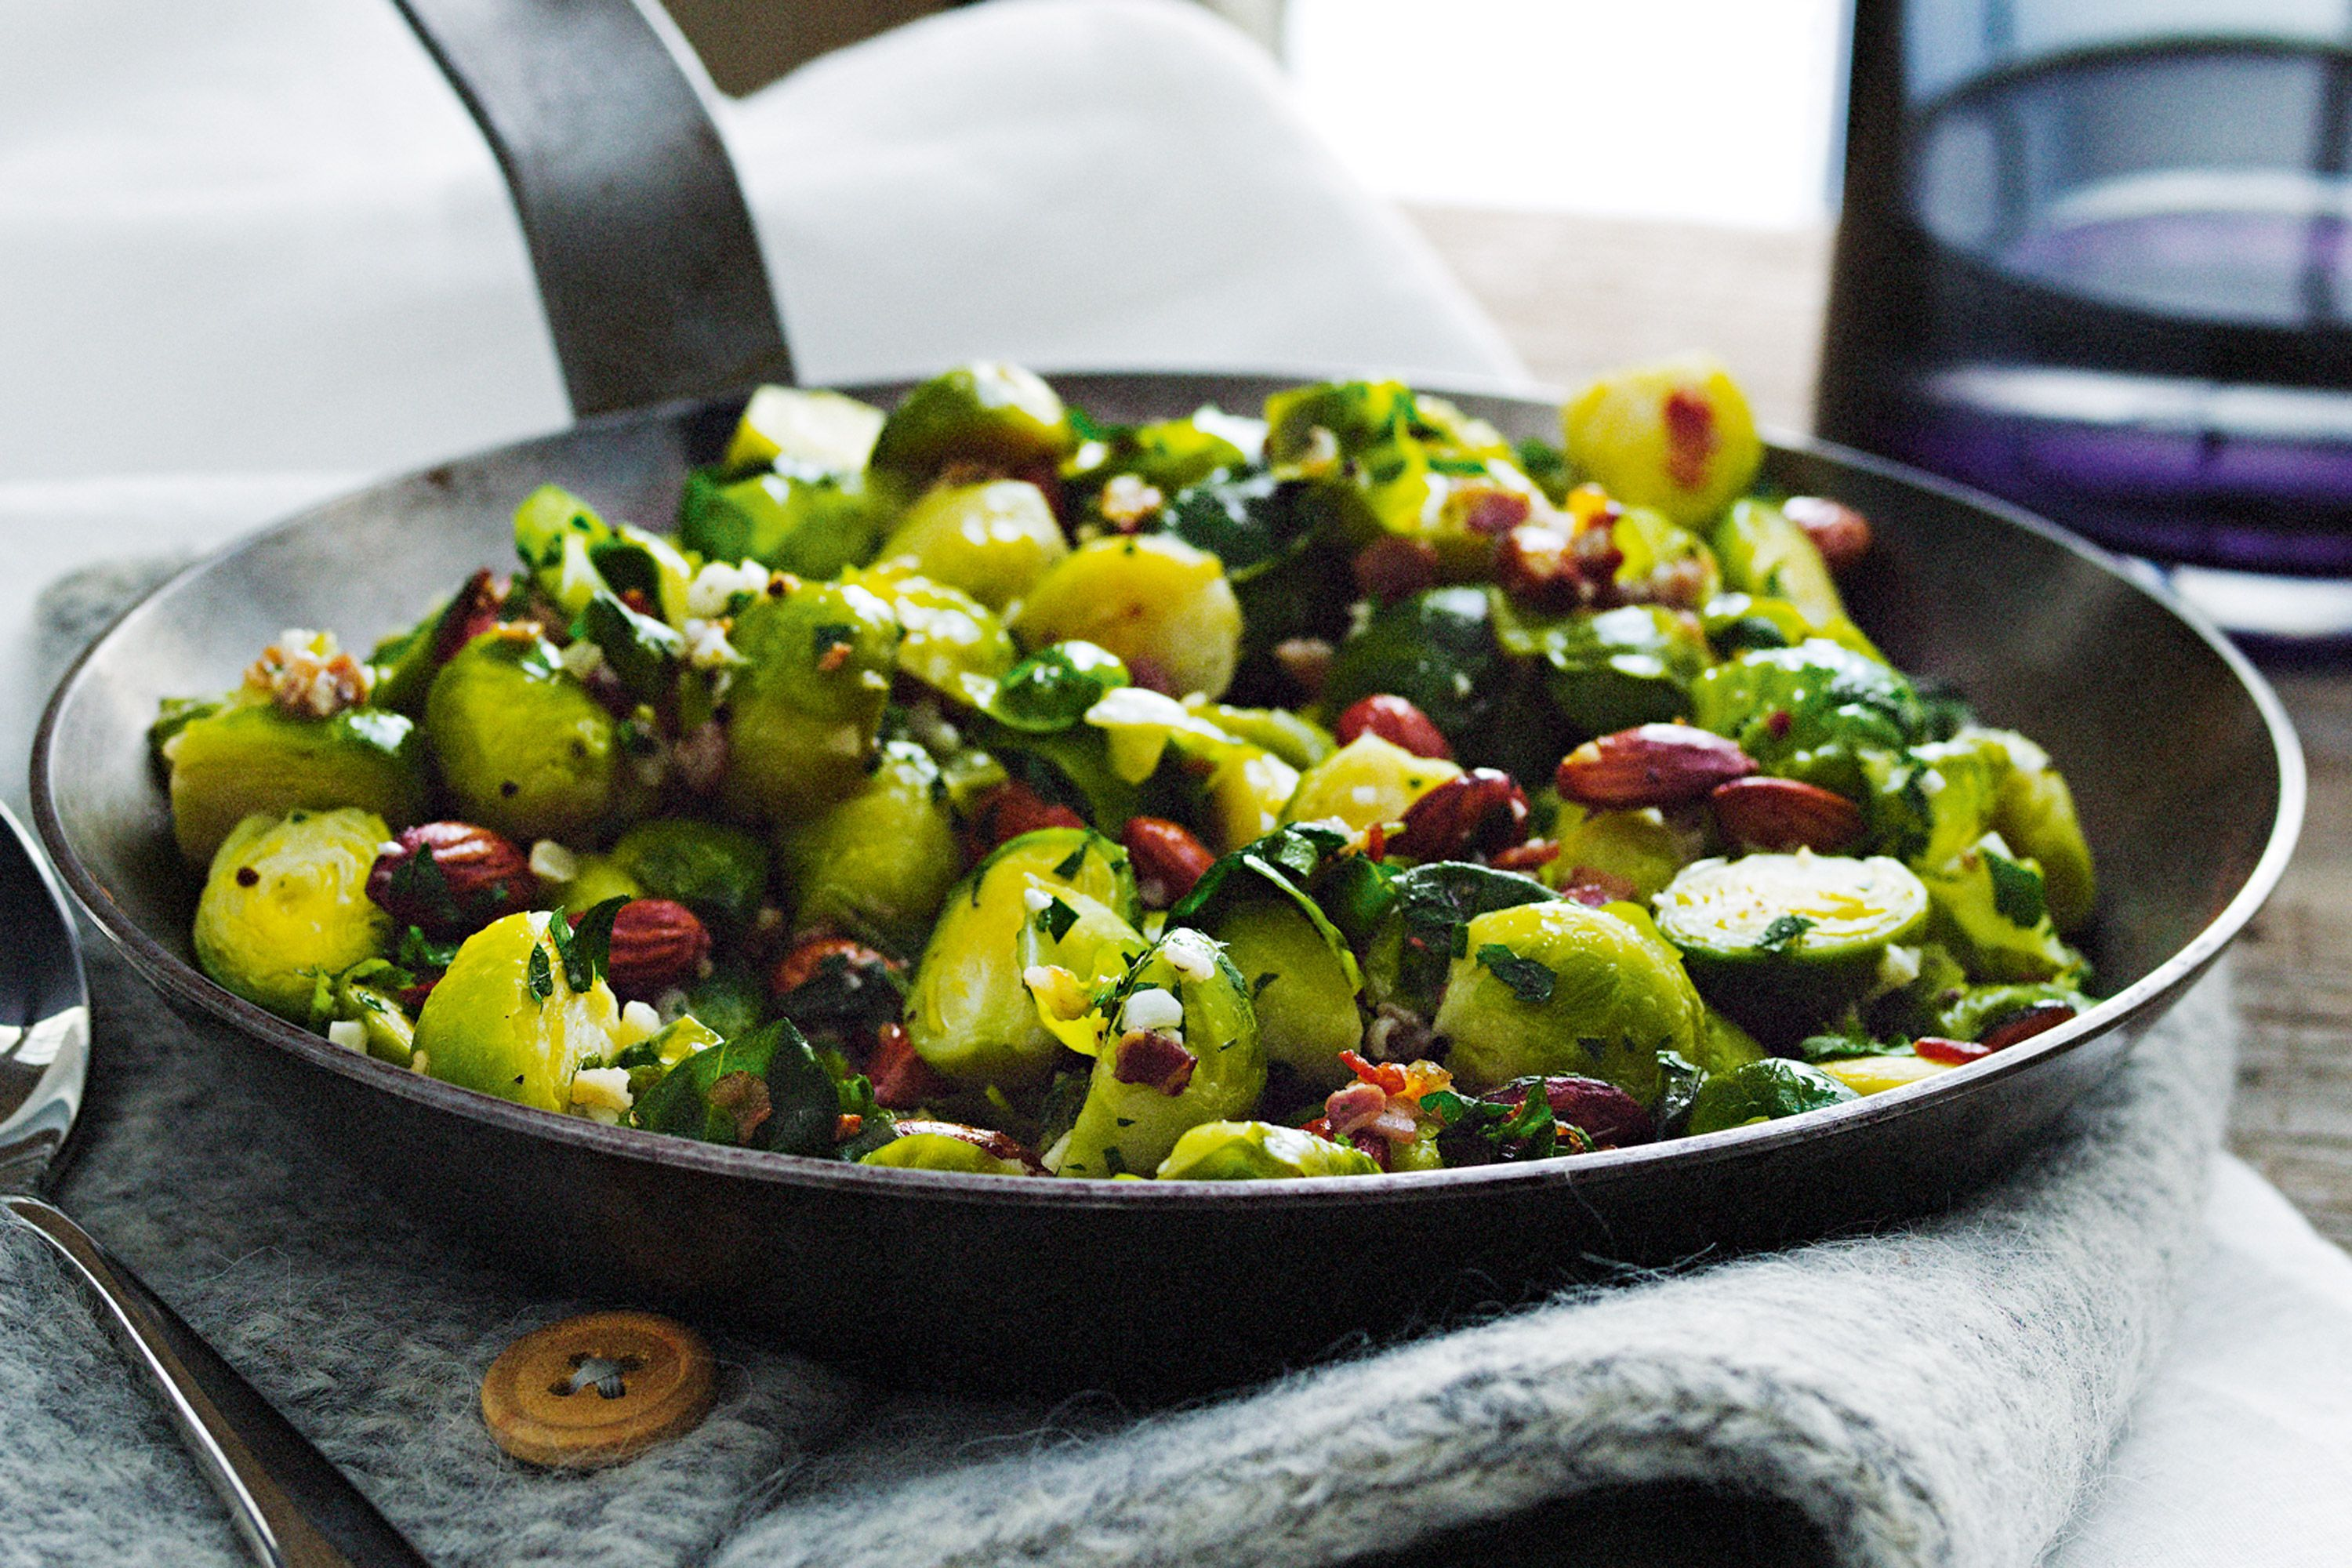 Cordial Bacon Almonds 76682 1 Deep Fried Brussel Sprouts Keto Deep Fried Brussel Sprouts Balsamic Pan Fried Brussels Sprouts nice food Deep Fried Brussel Sprouts